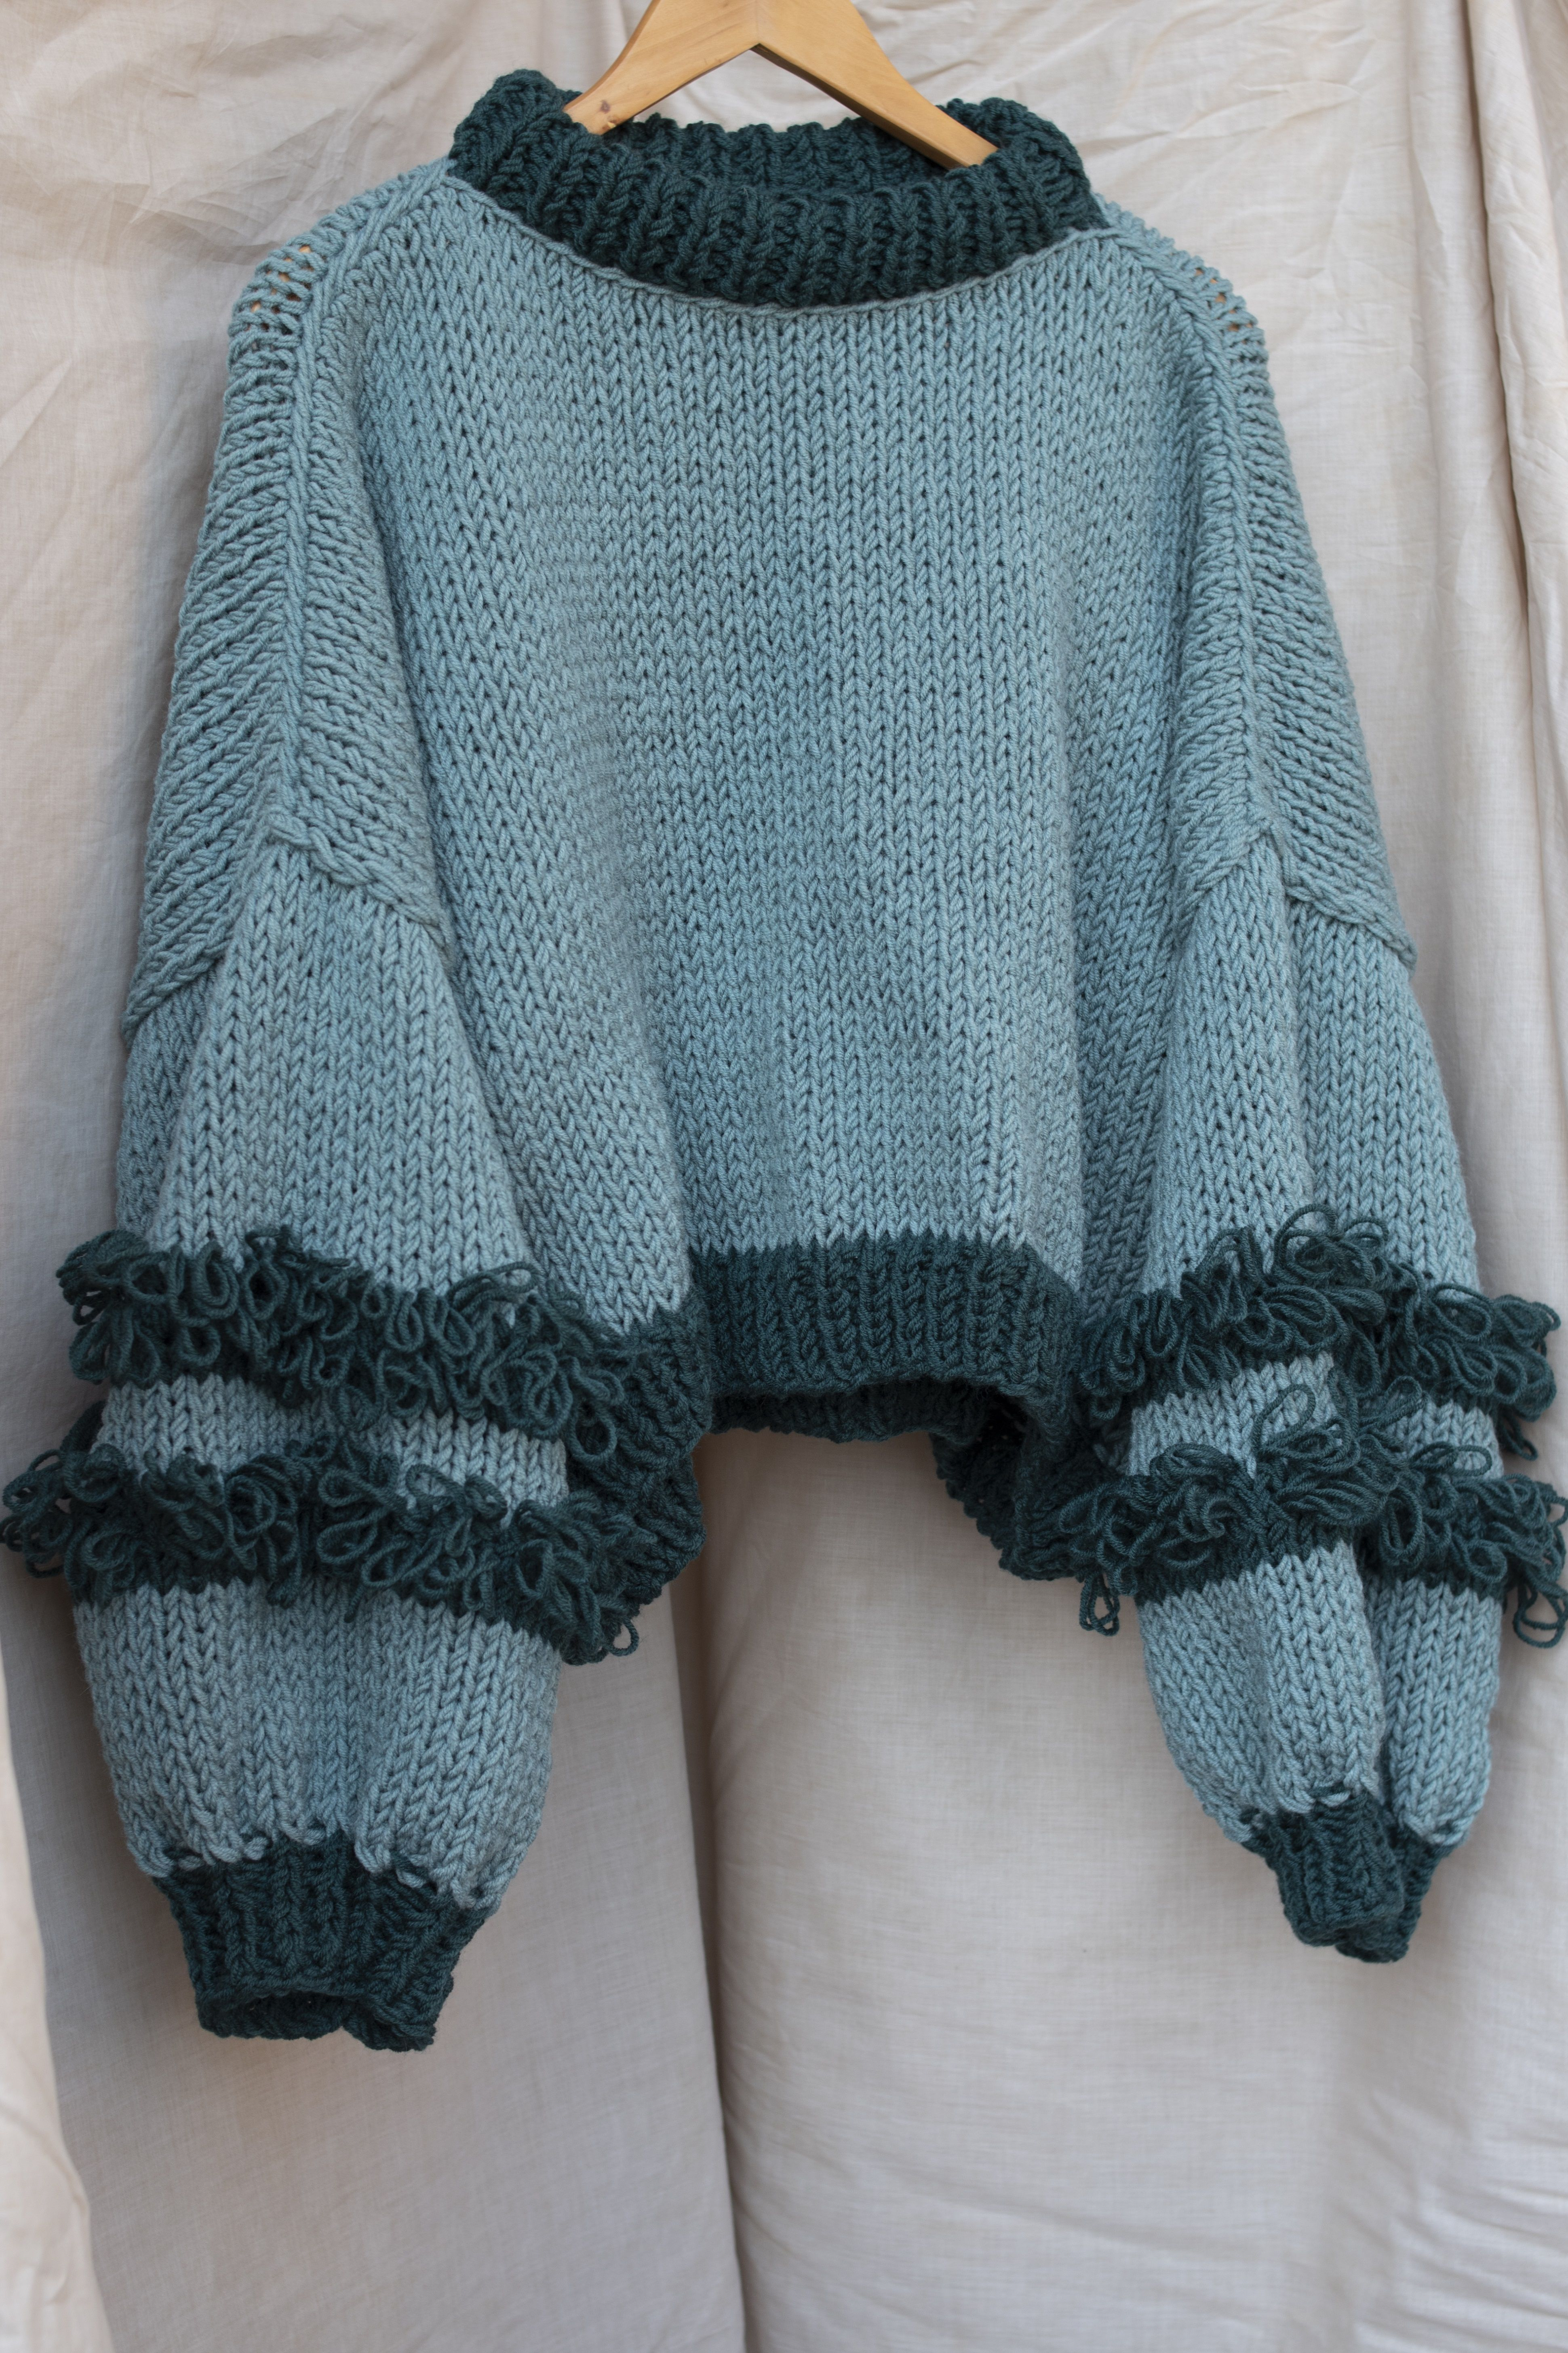 Hand Knit Chunky Sweater With Loopy Detailing Oversize Etsy Hand Knitted Sweaters Knit Fashion Shaggy Sweater